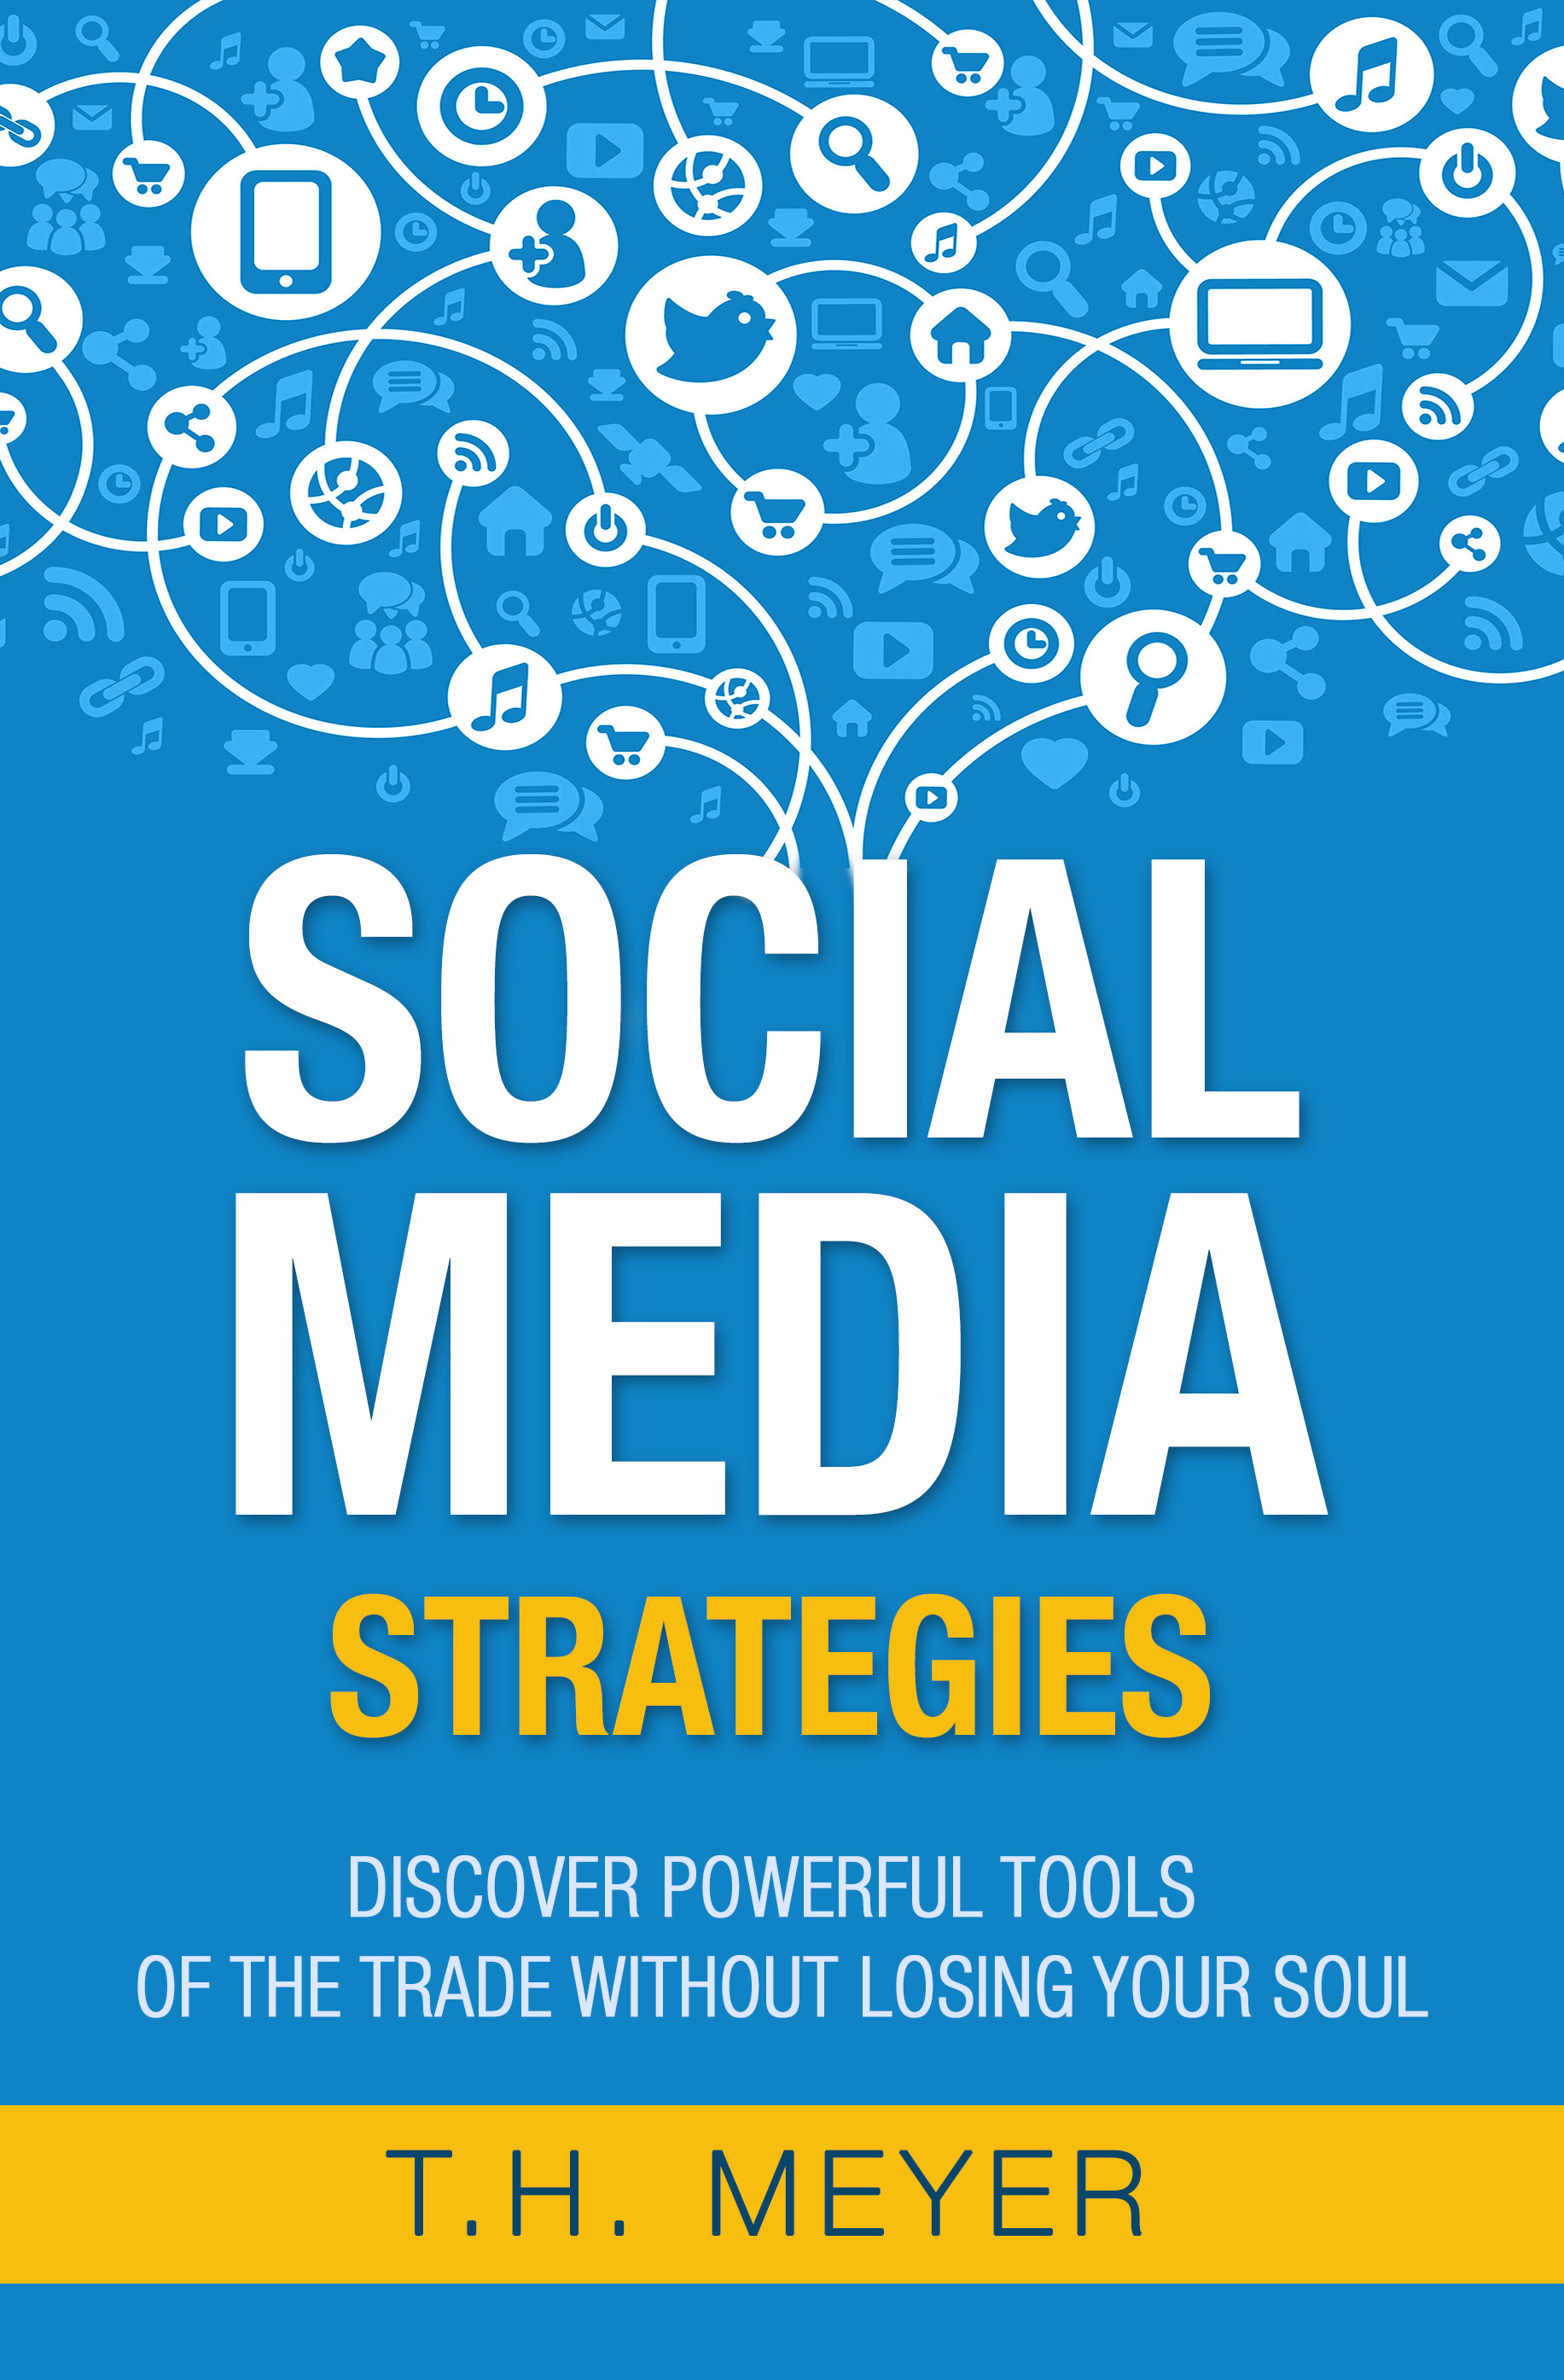 Social media strategies without losing your soul by T.H. Meyer